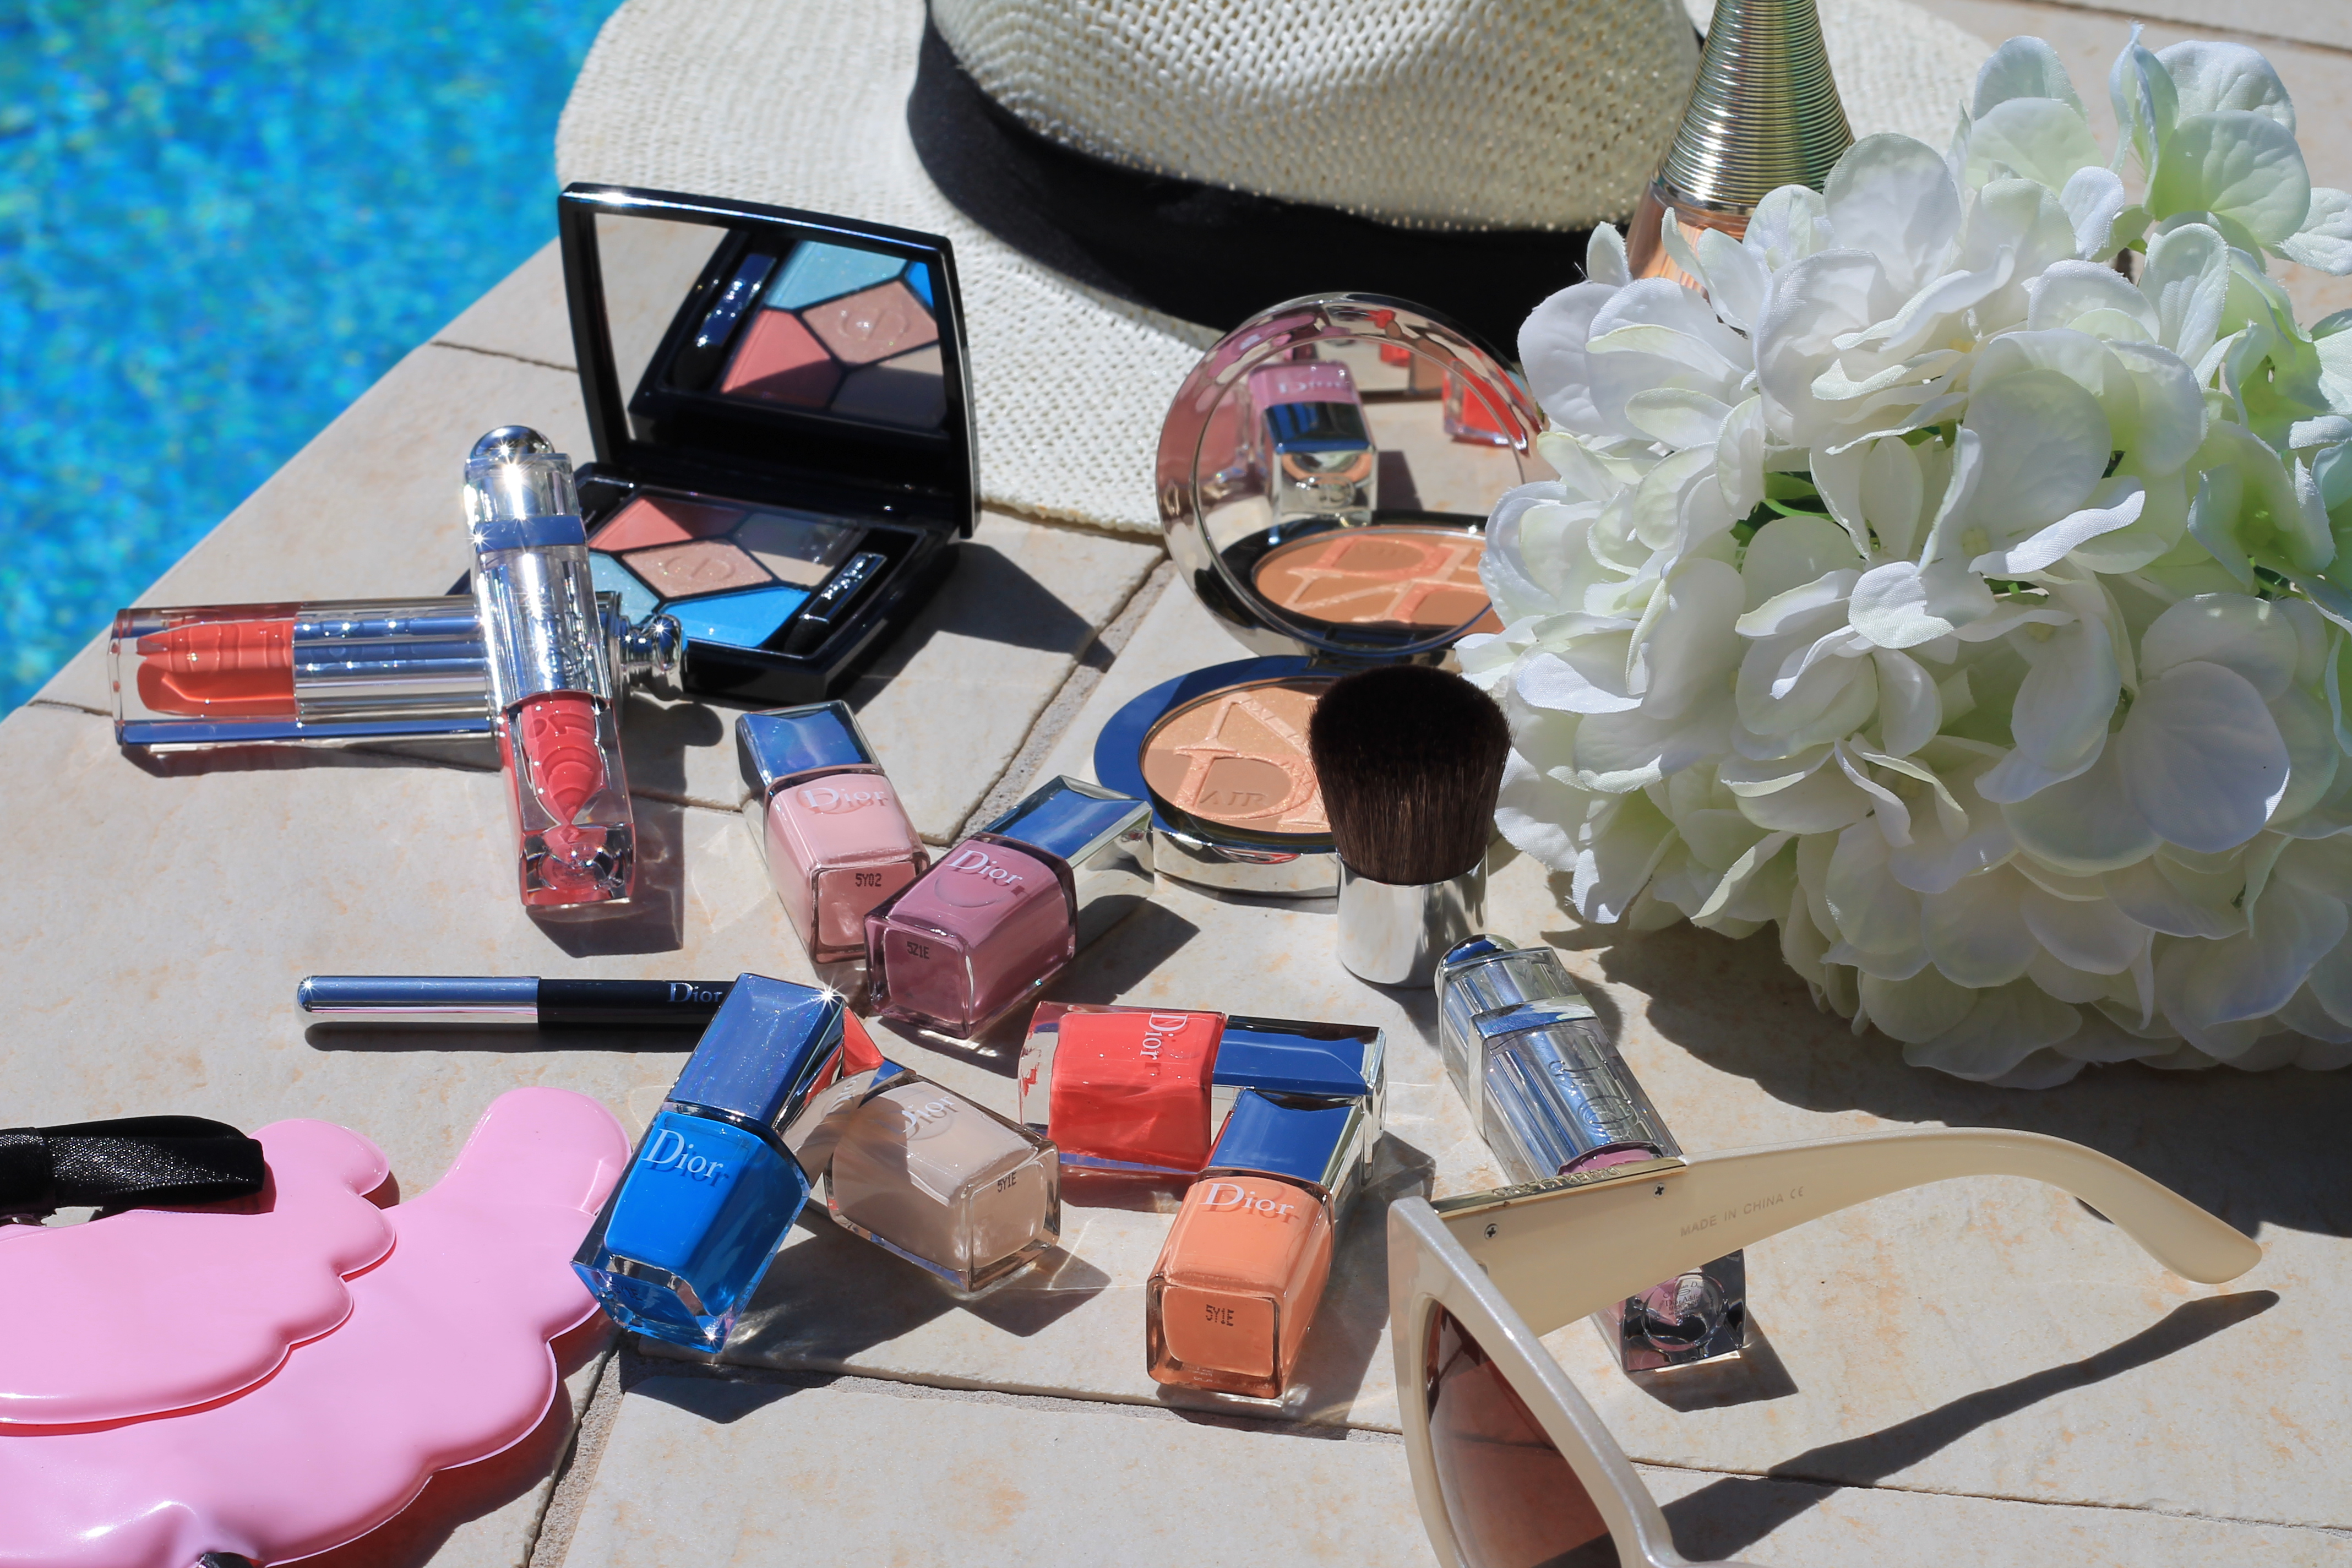 beauty trend summer 2016, theladycracy.it, elisa bellino, fashion blog, fashion bloggers, fashion blogger italia, fashion bloggers italiane, beauty blogger dior, dior makeup 2016, novità dior, profumi dior buoni, j adore dior eau de toilette nuovo, bain de mer palette dior, make up estate 2016, elisa bellino, web influencer italia, milky dots dior,Beauty trends summer 2016